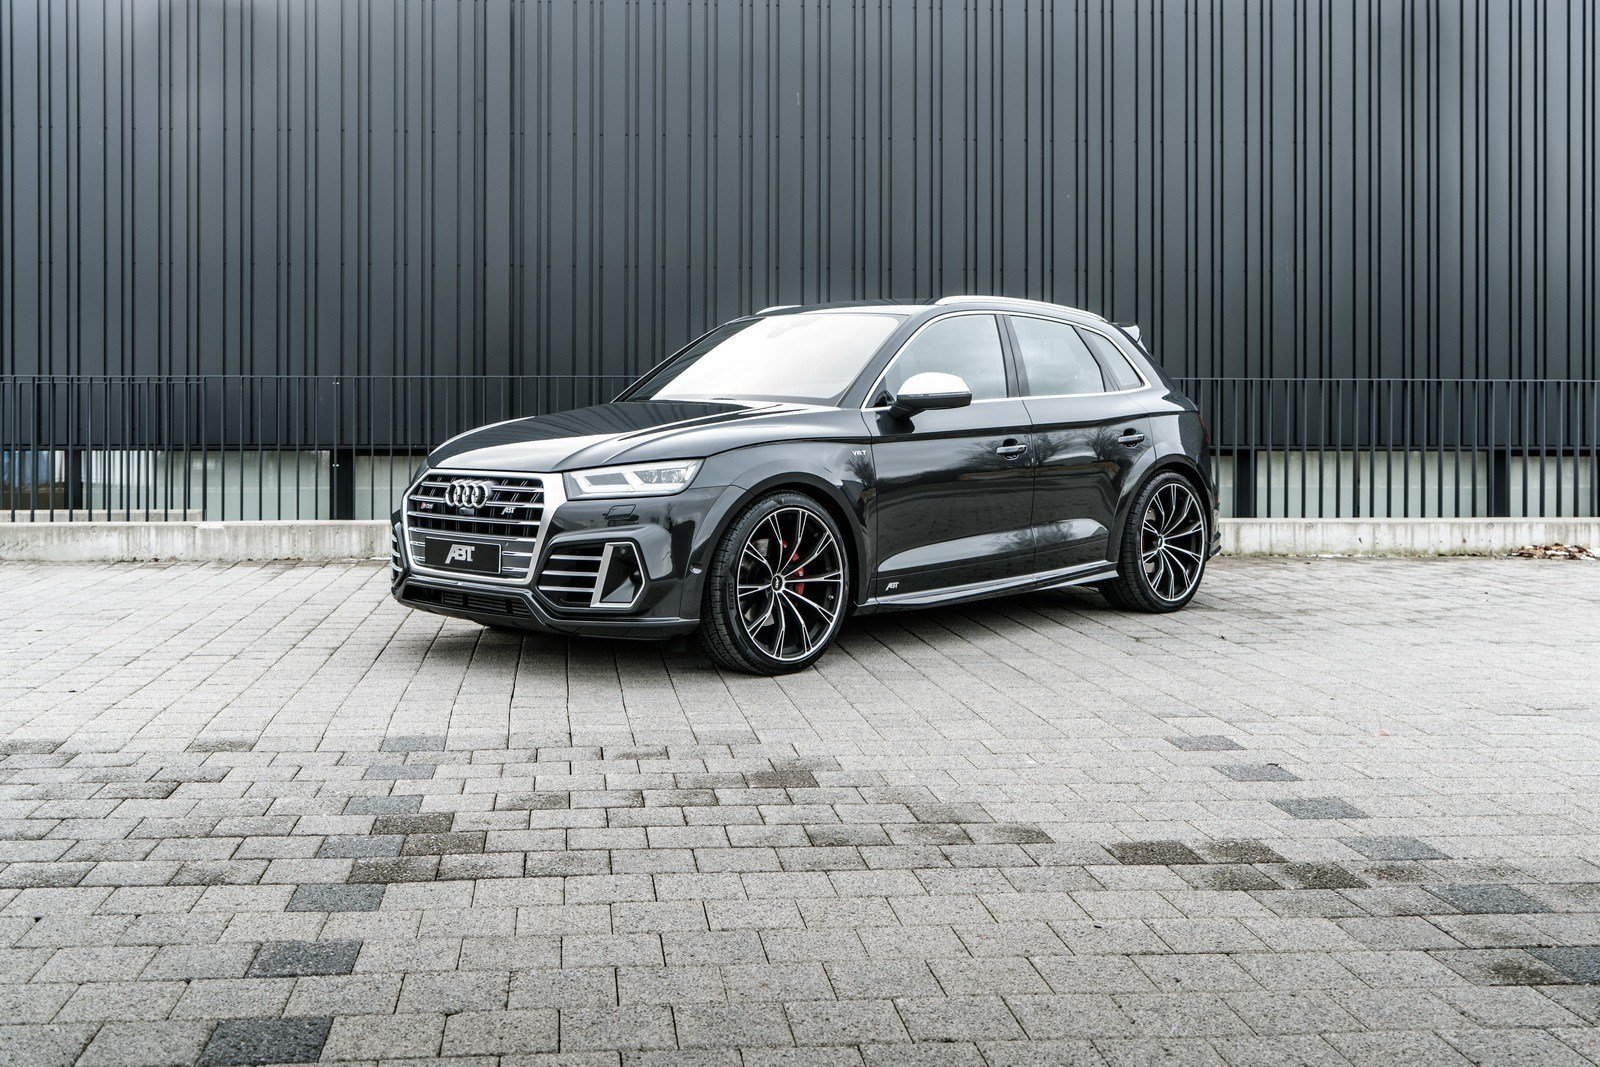 Latest Audi Sq5 Tuning By Abt Includes Widebody Kit And 425 Hp Free Download